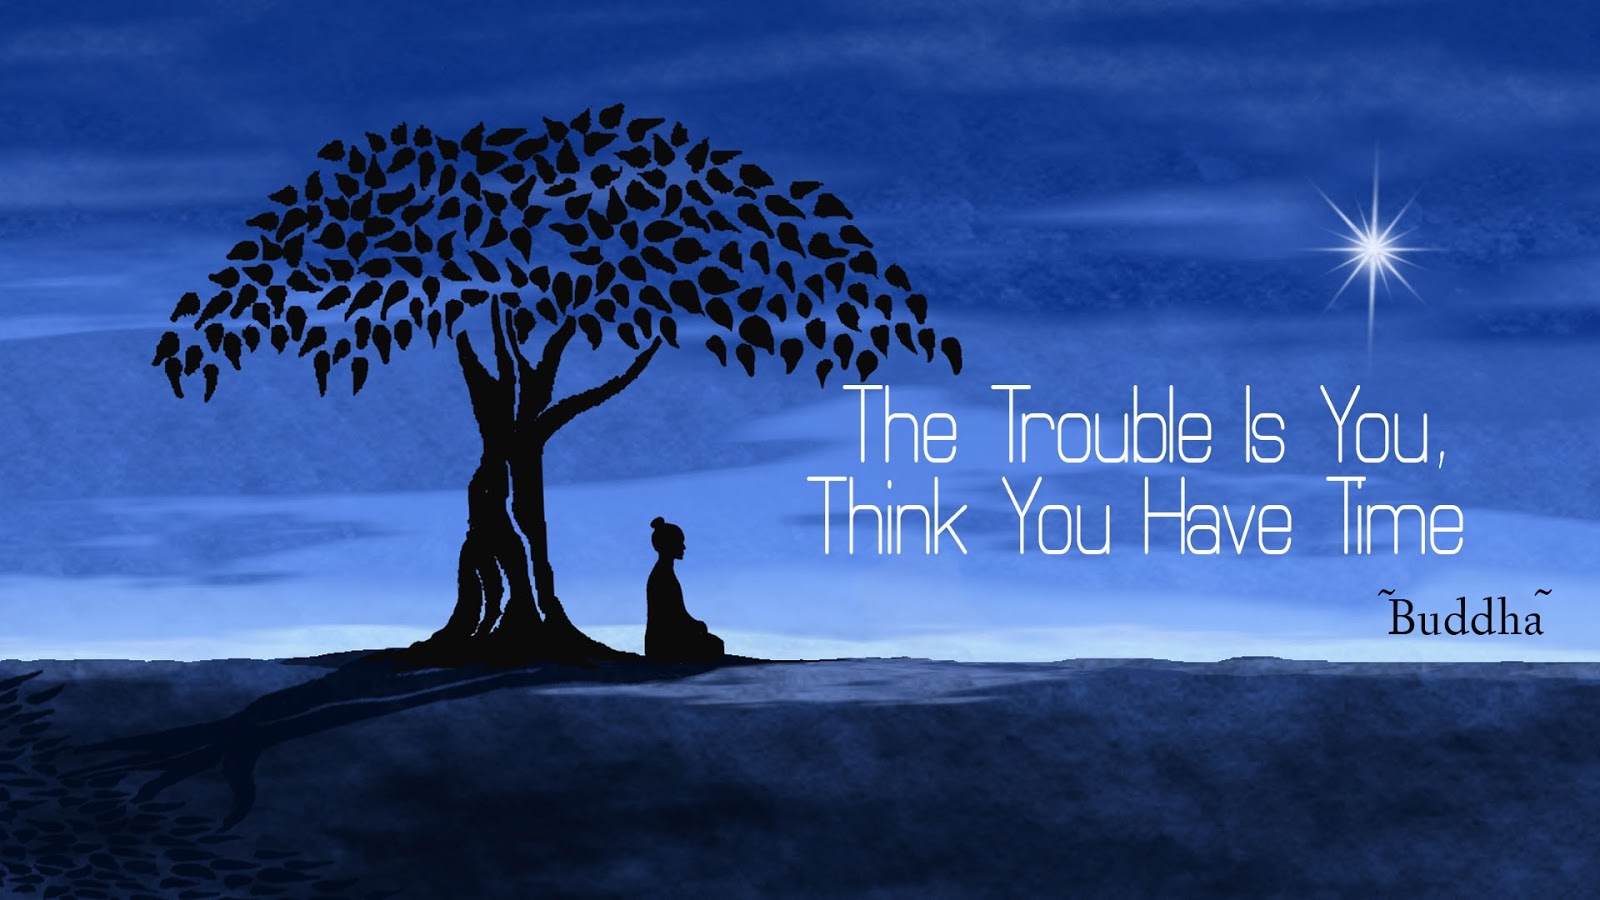 Quotes About Life Buddha Lord Buddha Quotes For Life Juicy Quote